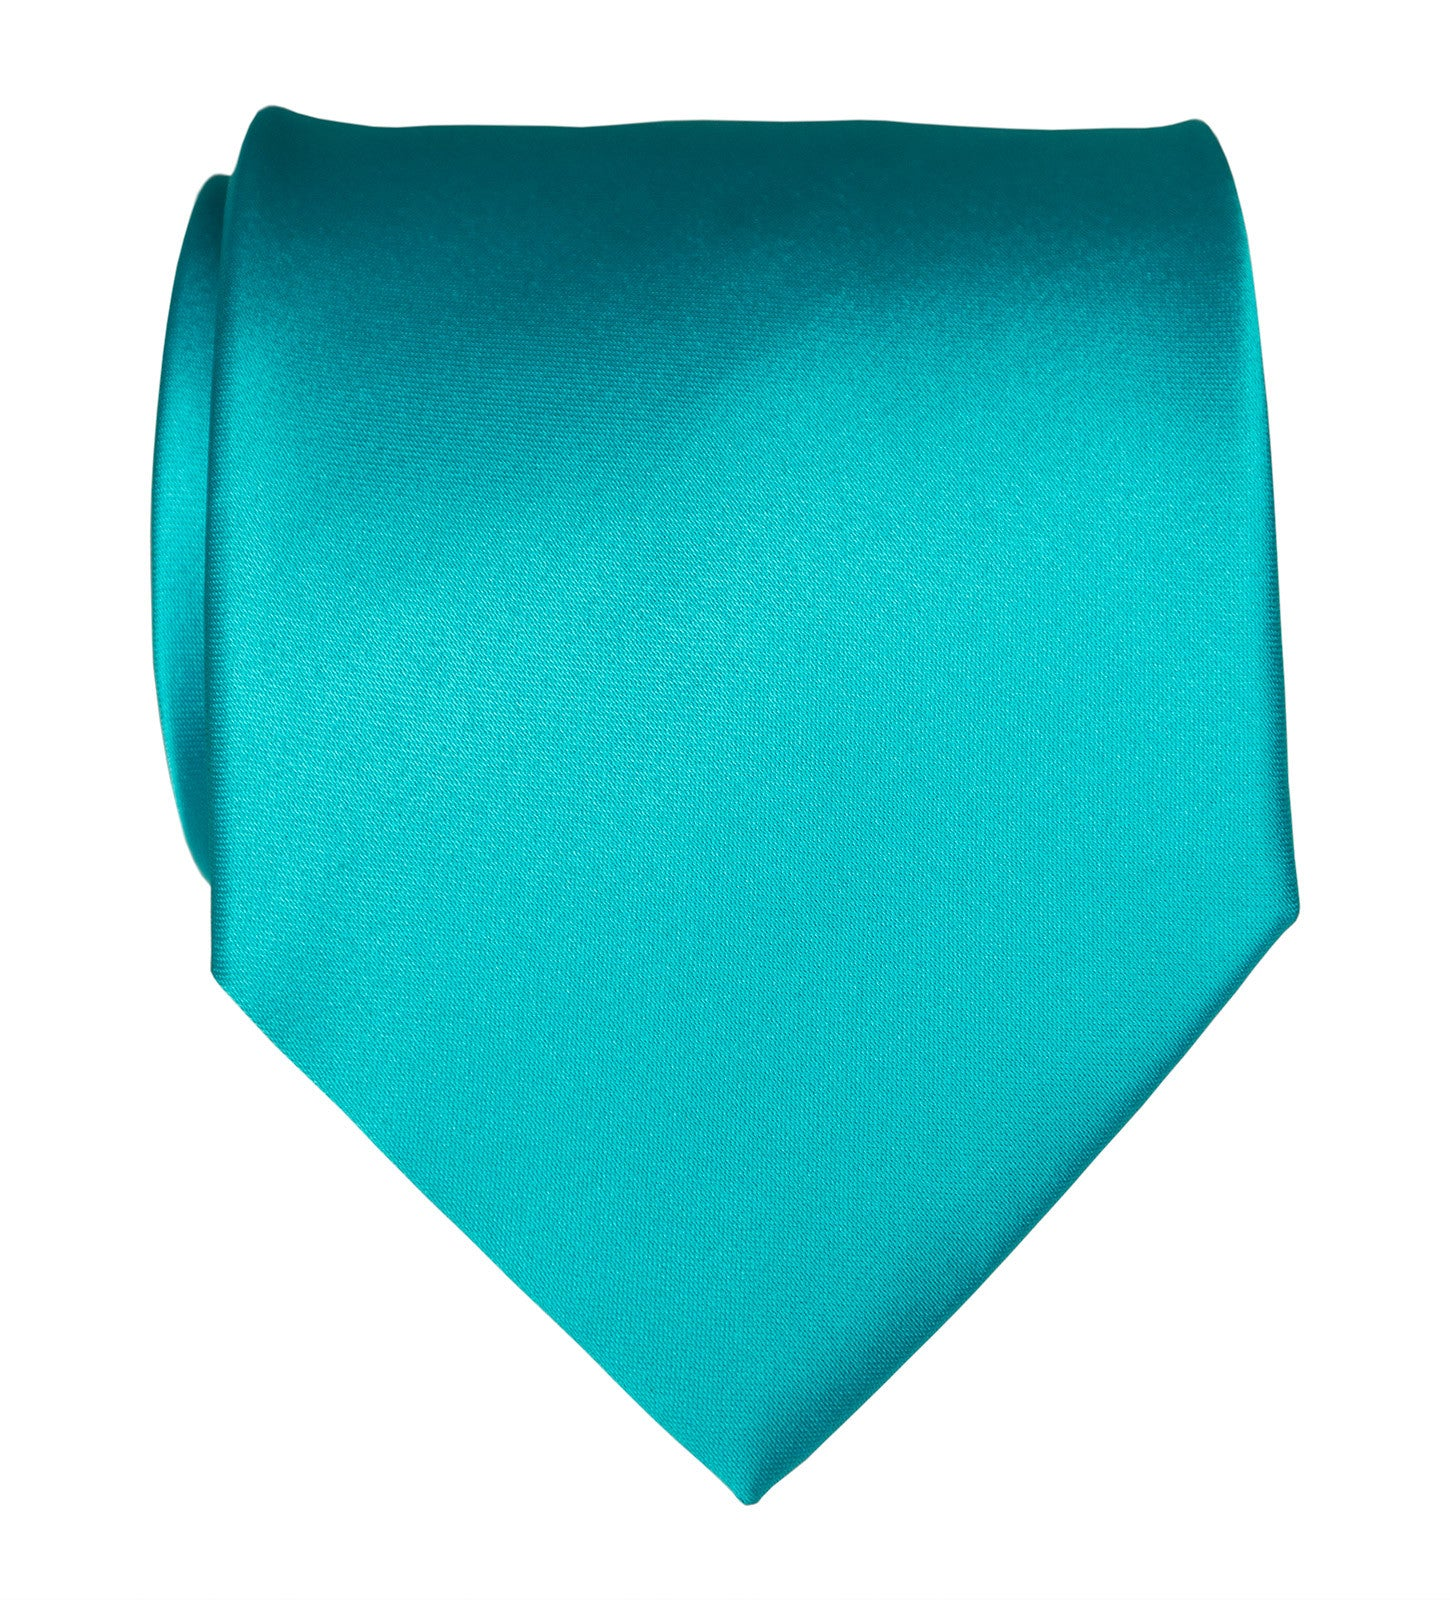 Turquoise Necktie Solid Color Satin Finish Tie No Print